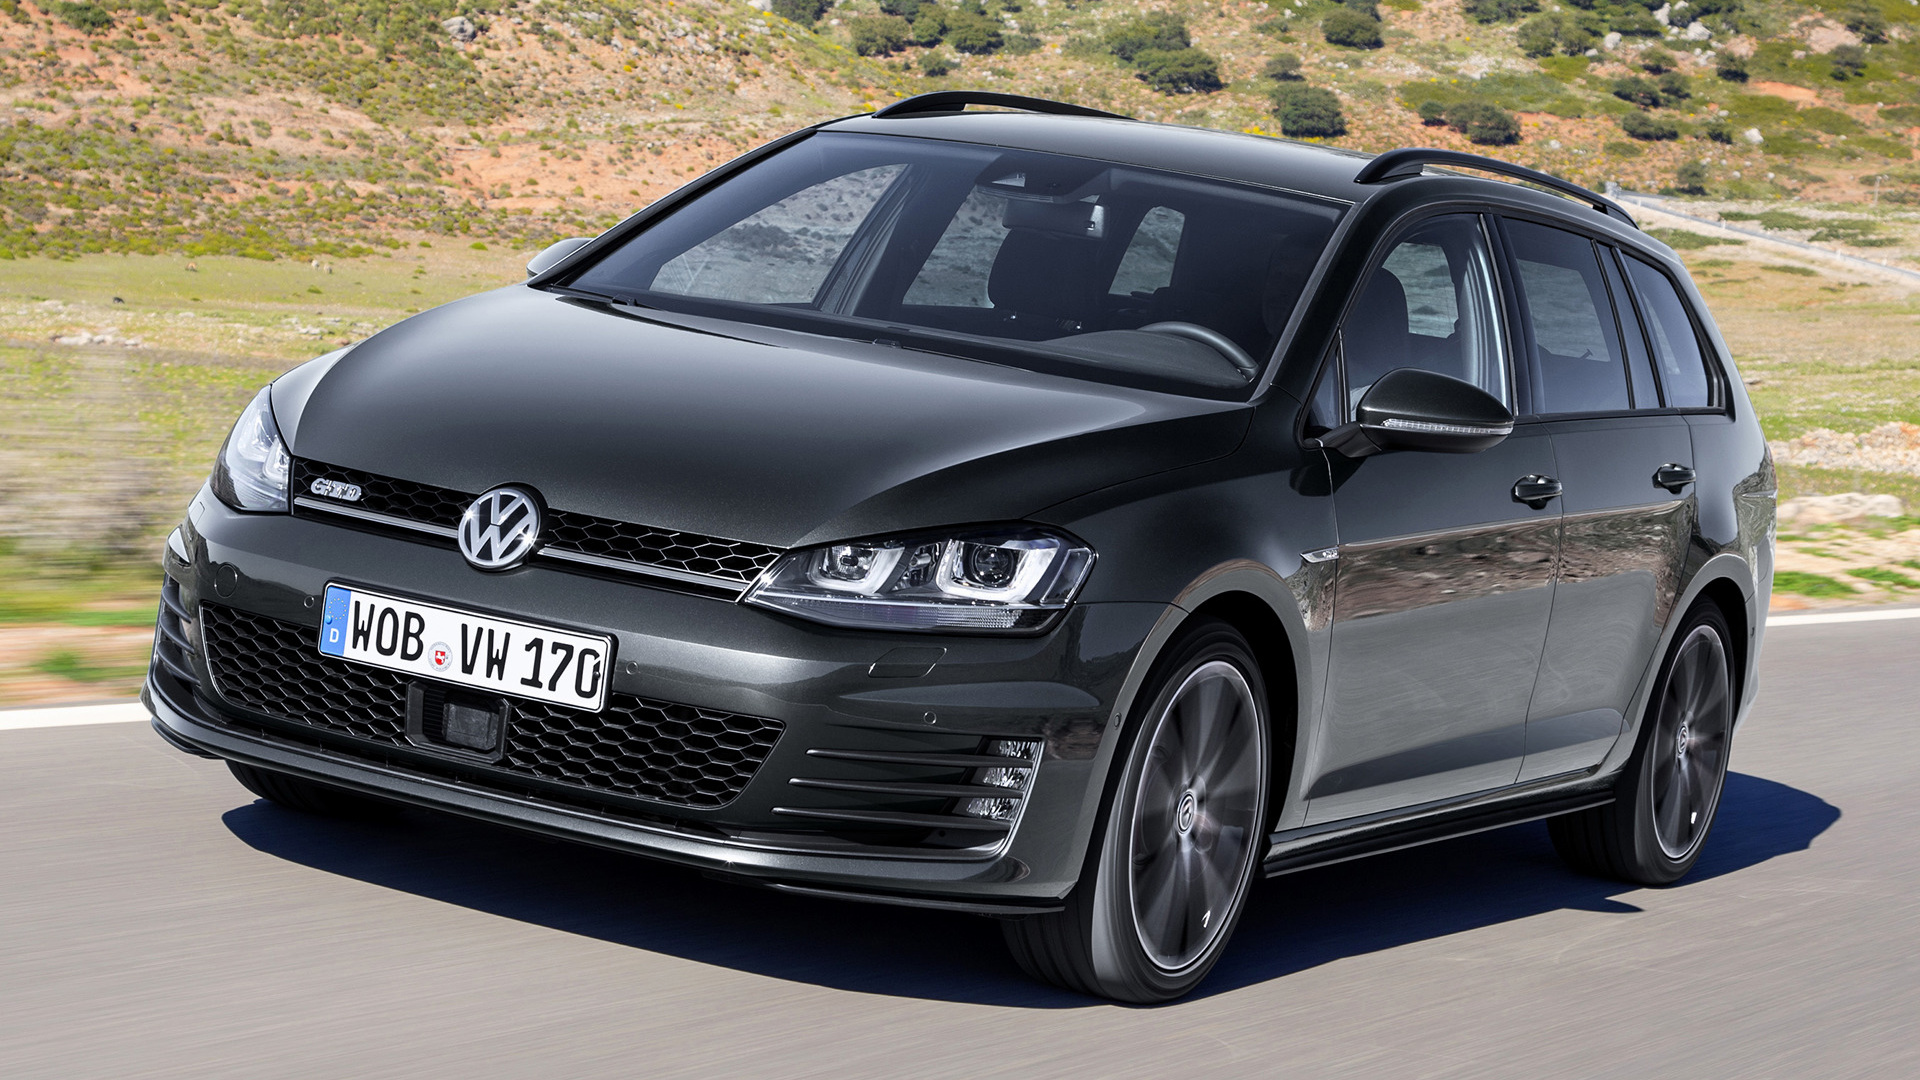 2015 volkswagen golf gtd variant car photos catalog 2018. Black Bedroom Furniture Sets. Home Design Ideas